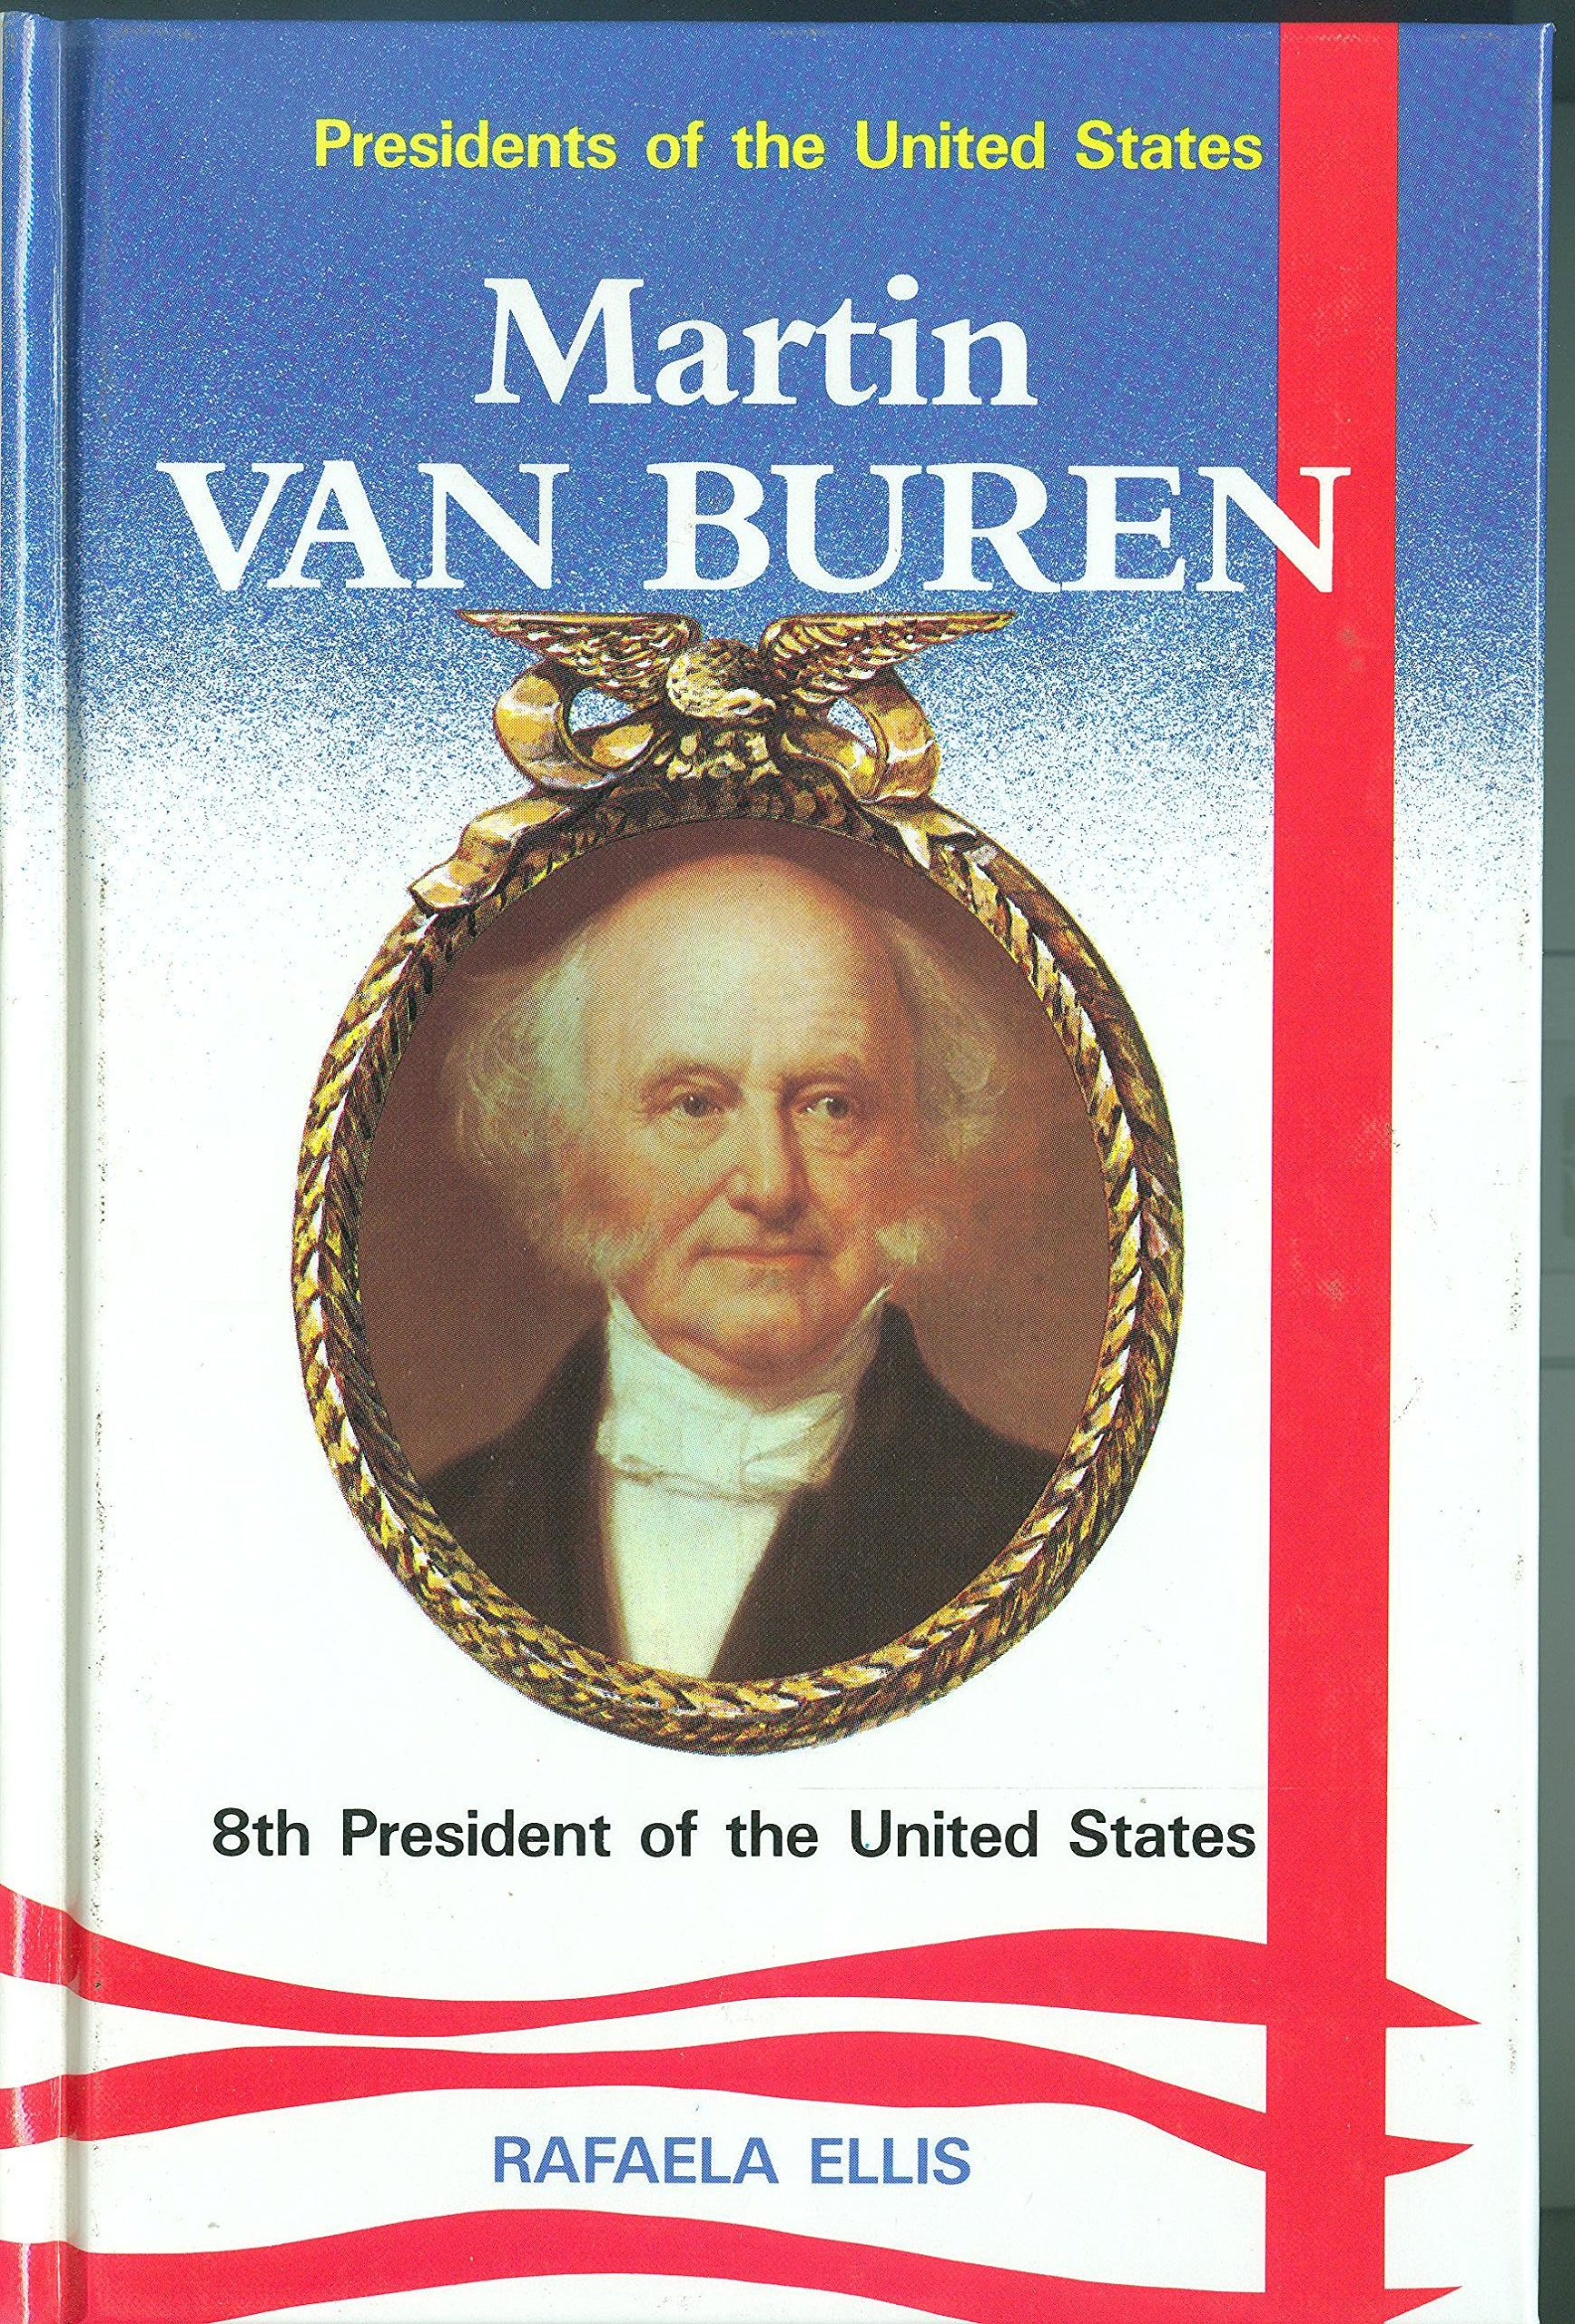 martin van buren 8th president of the united states presidents of the united states rafaela ellis 9780944483121 amazoncom books